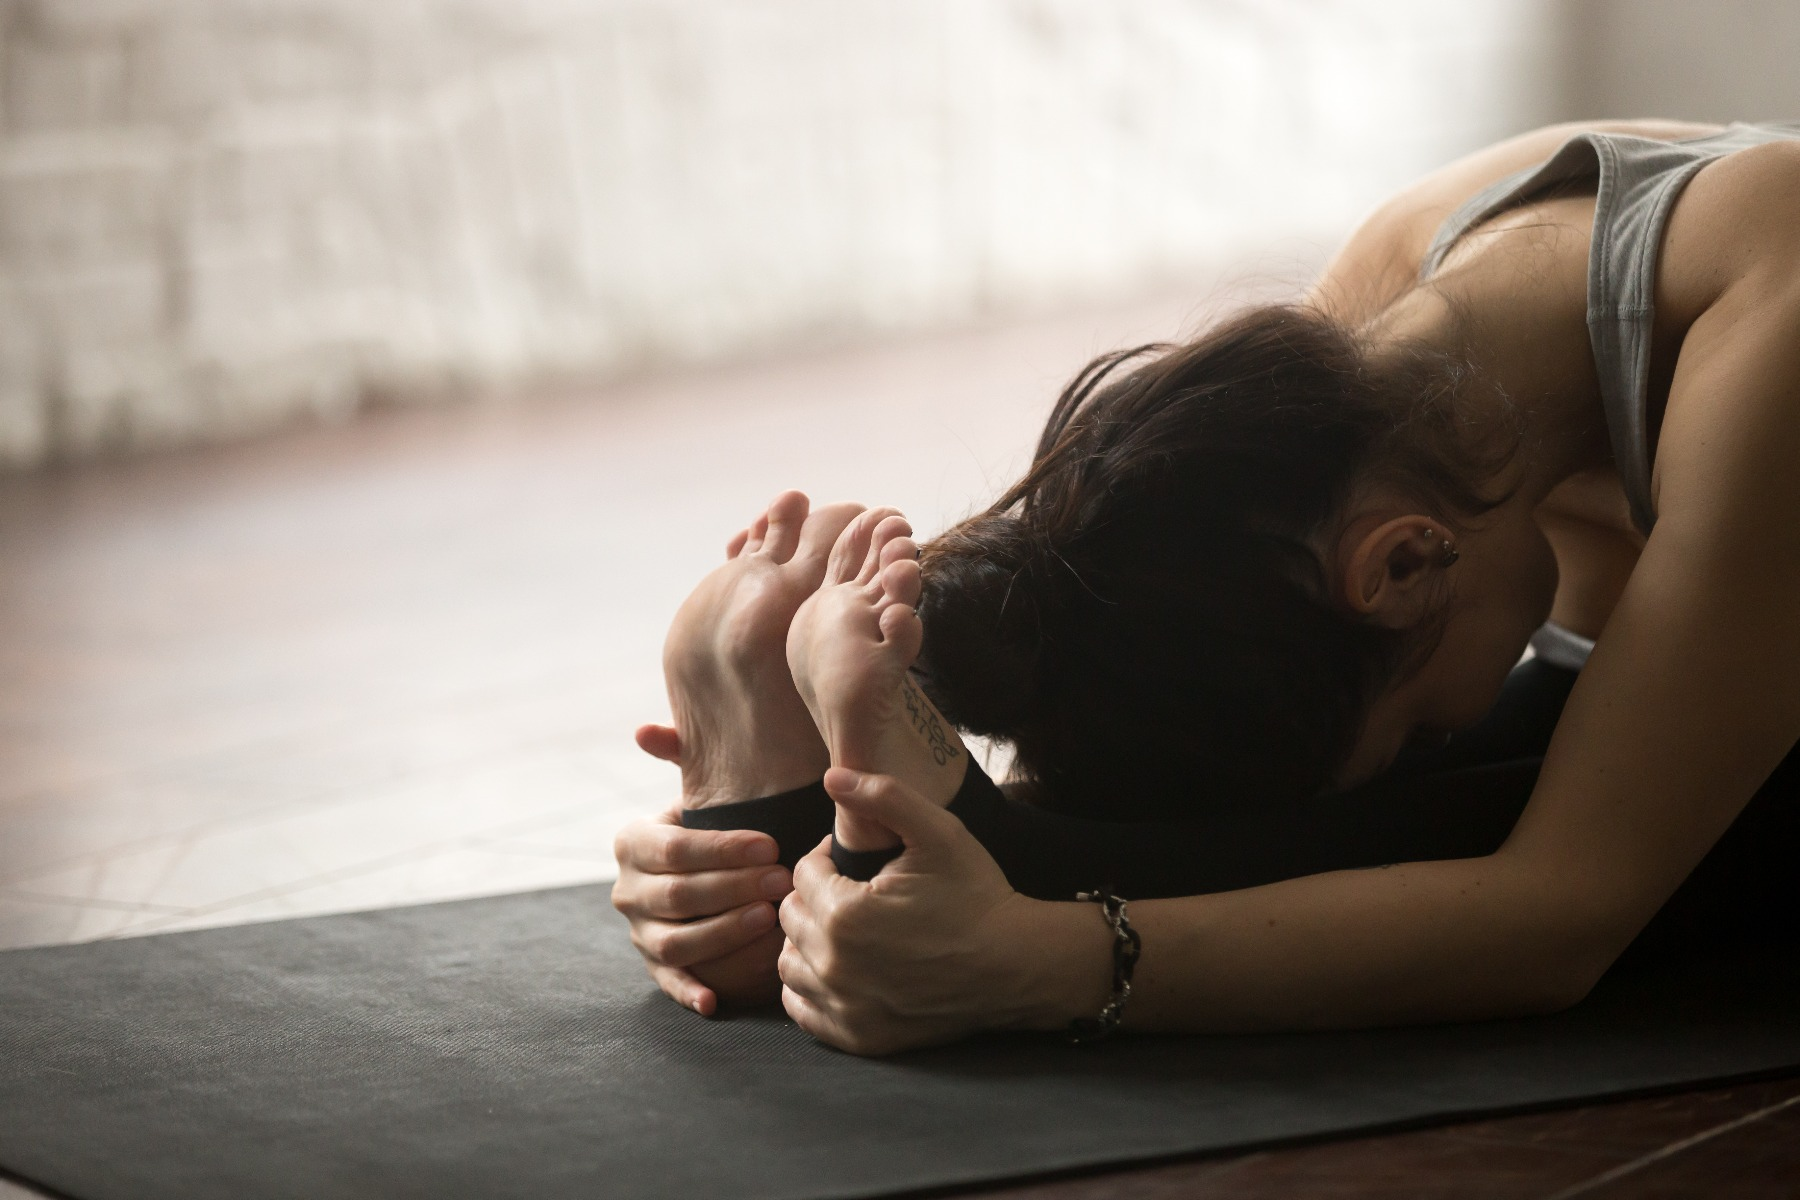 Woman practicing yoga on mat, bent over stretching to reach her toes